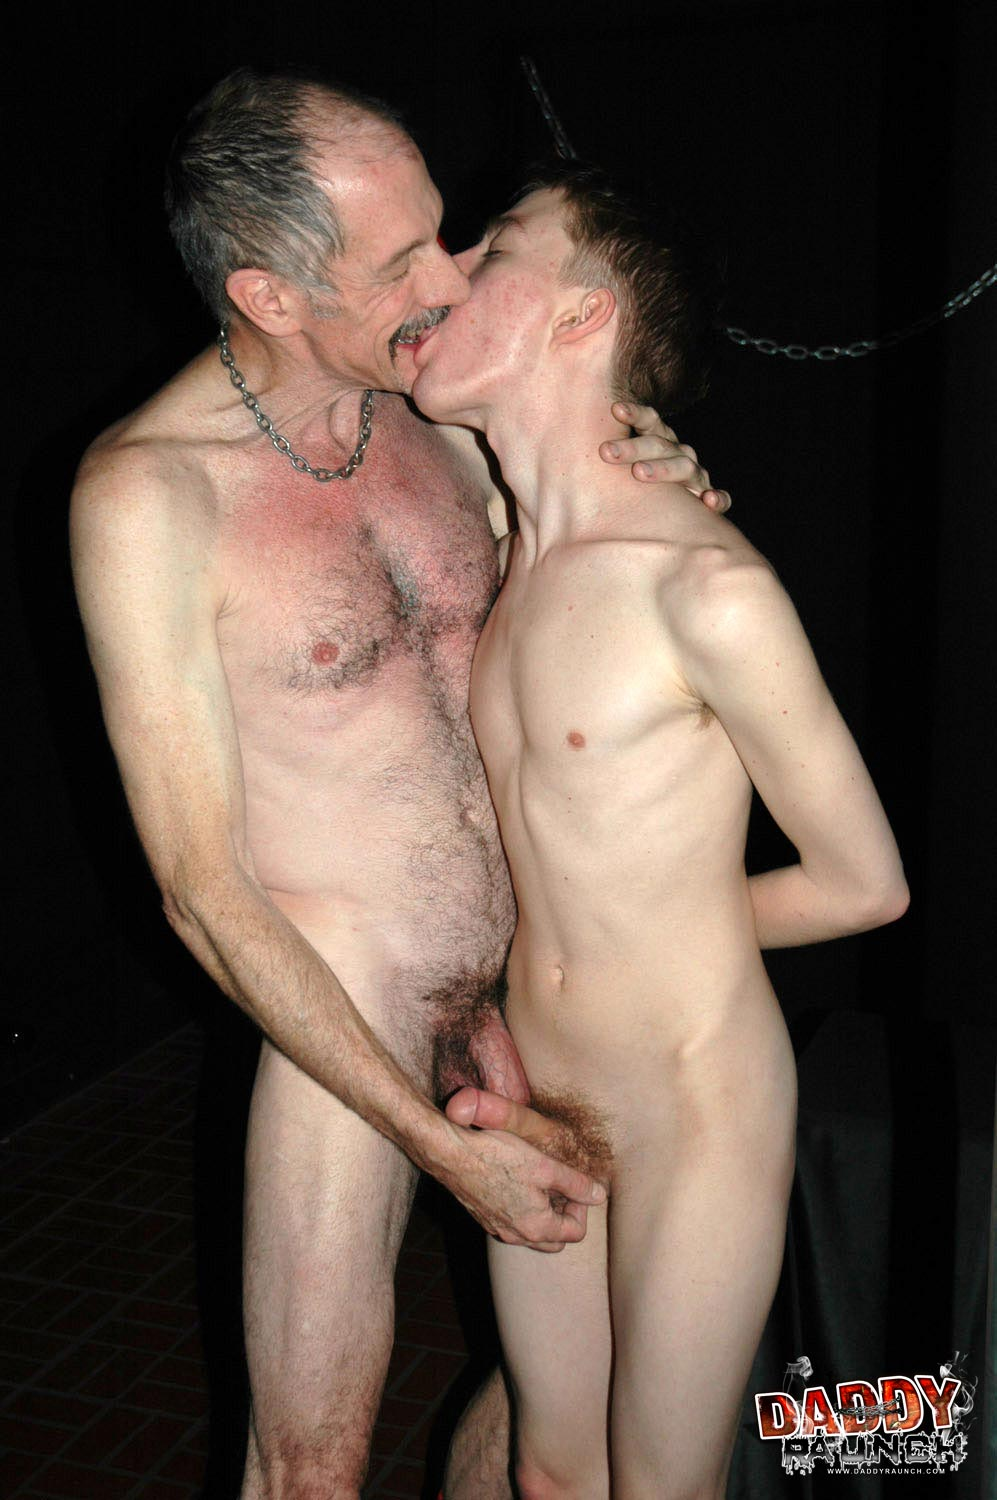 Daddy and twink gay porn